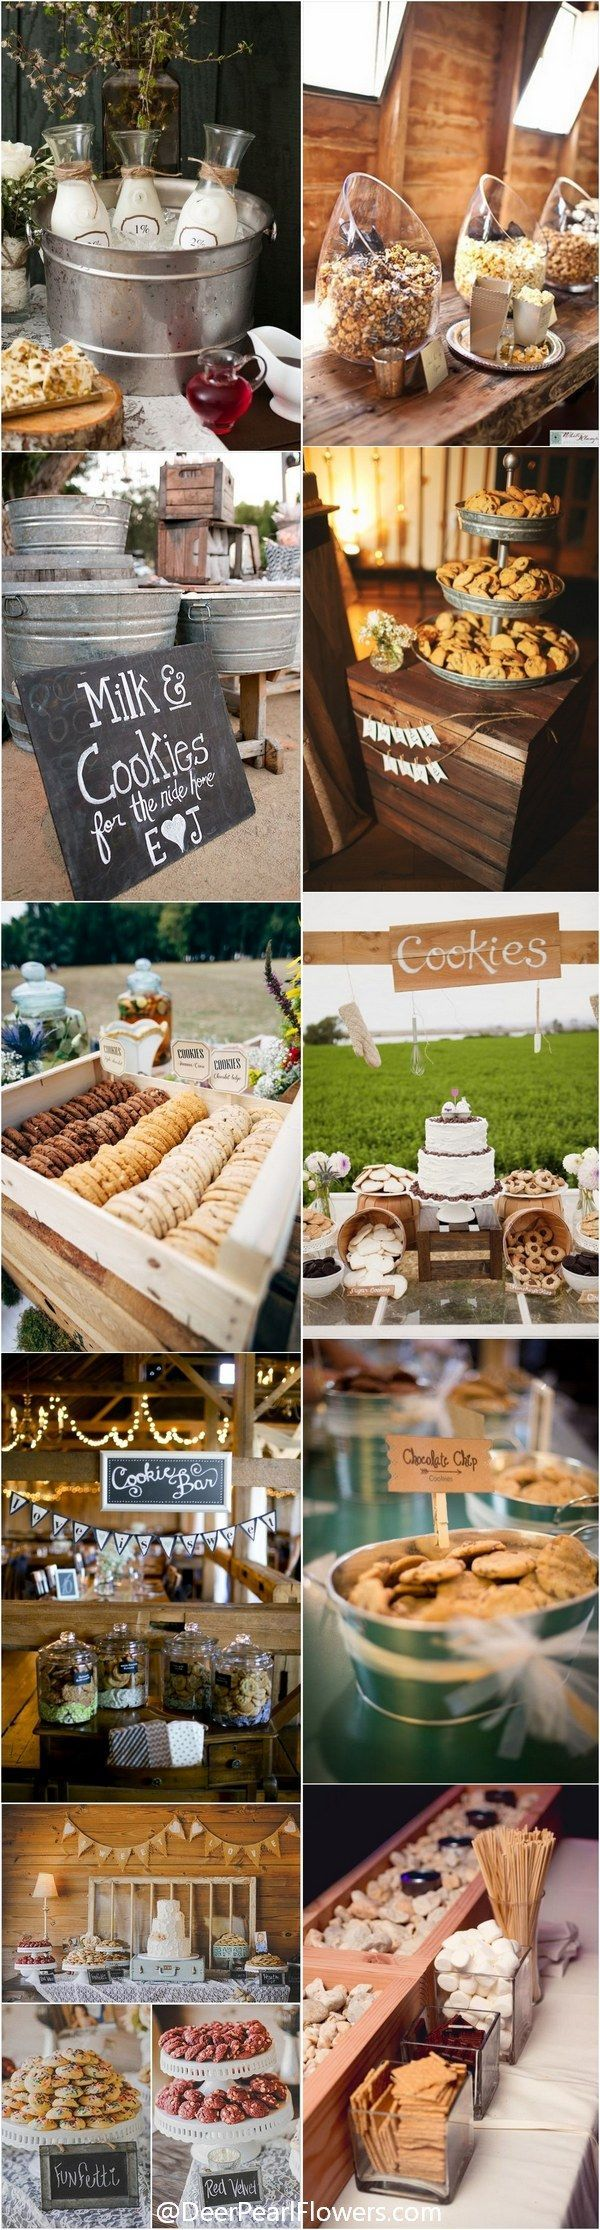 30 Trendy Wedding S\'more, Cookies & Milk Bar Ideas | Wedding foods ...